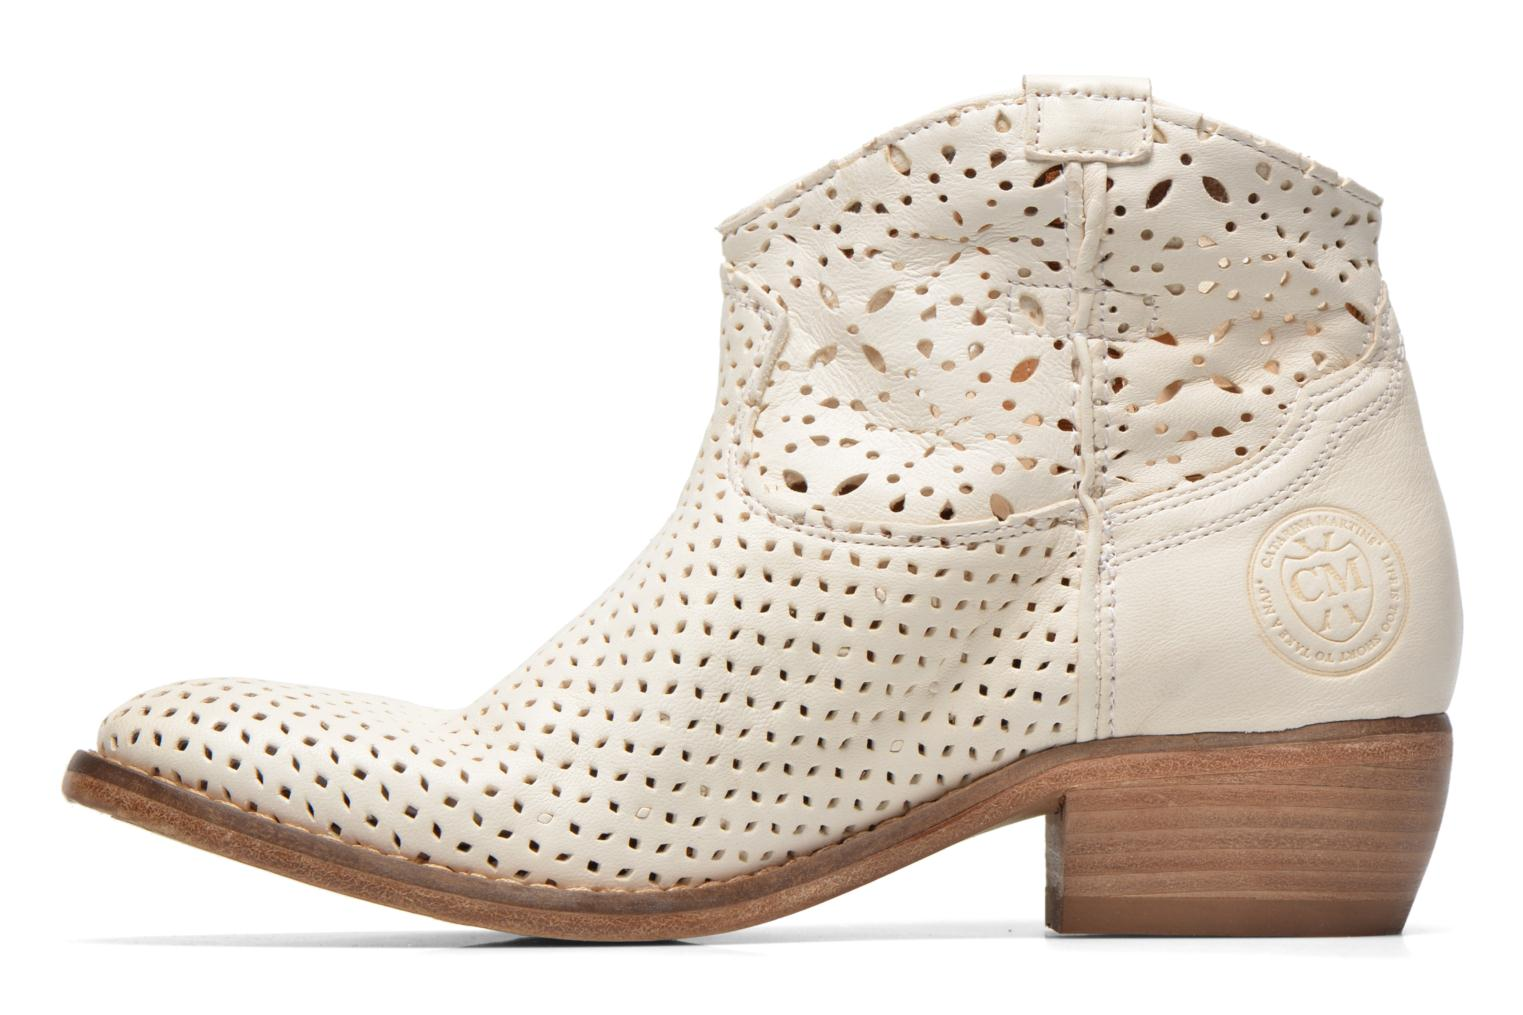 Bottines et boots Catarina Martins MEGAN ZIP BOOT PERF. LEATHER Blanc vue face